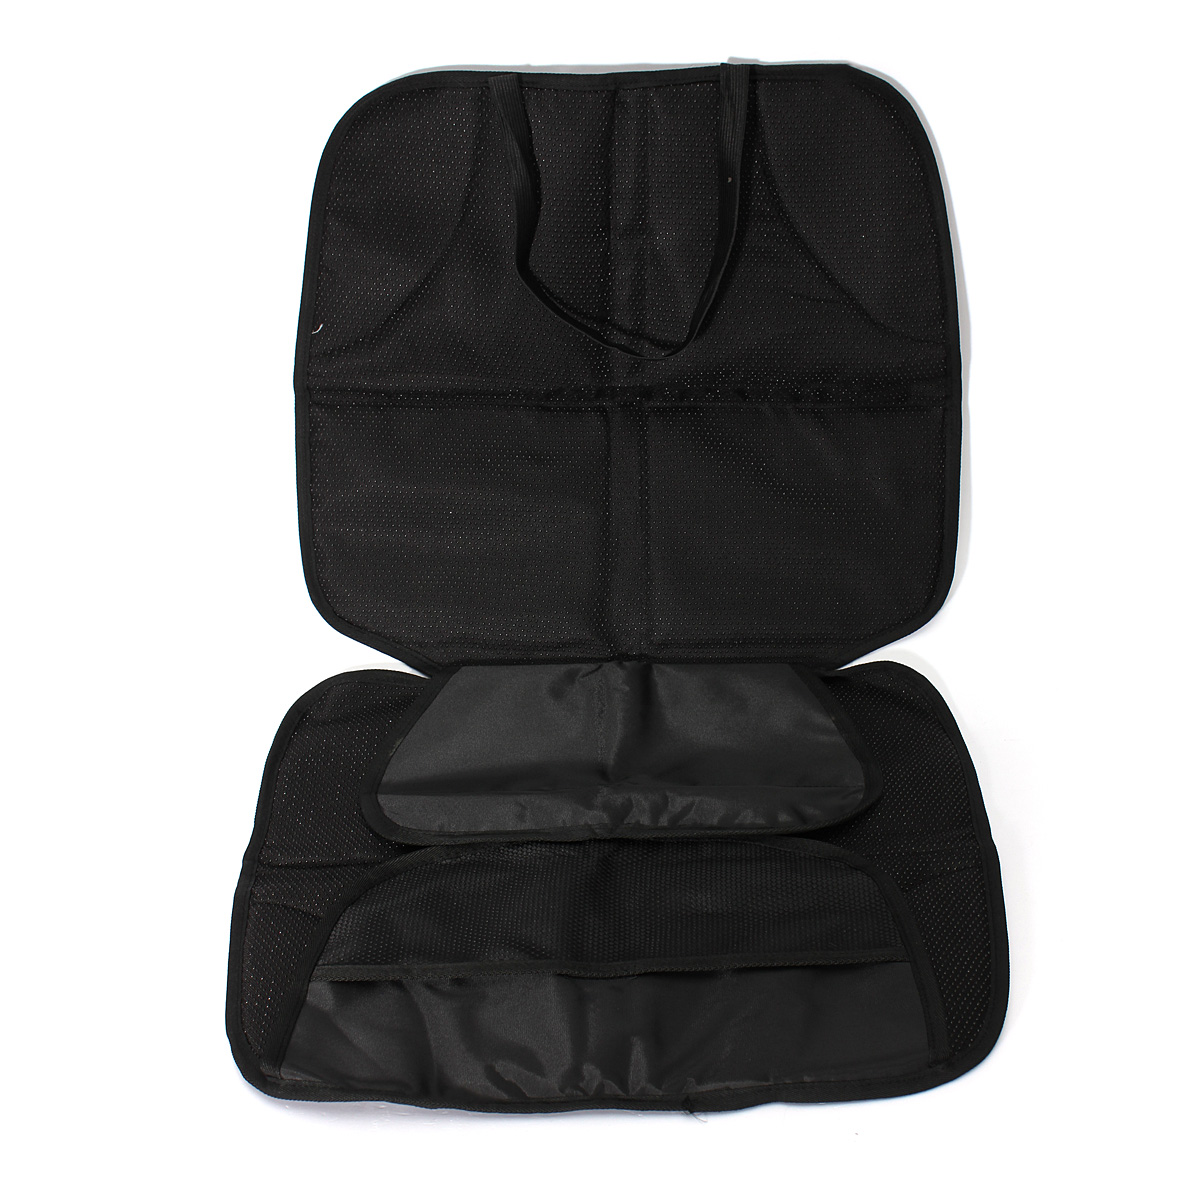 How To Clean Child Car Seat Cover